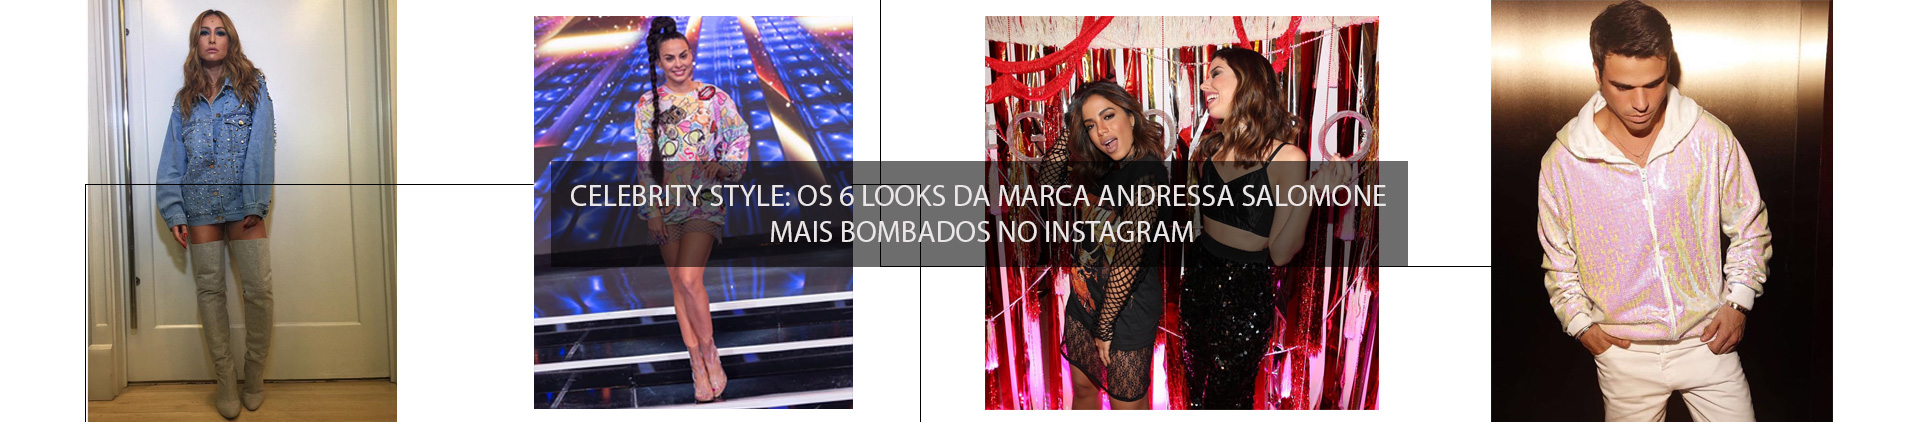 CELEBRITY STYLE: OS 6 LOOKS DA MARCA ANDRESSA SALOMONE MAIS BOMBADOS NO INSTAGRAM